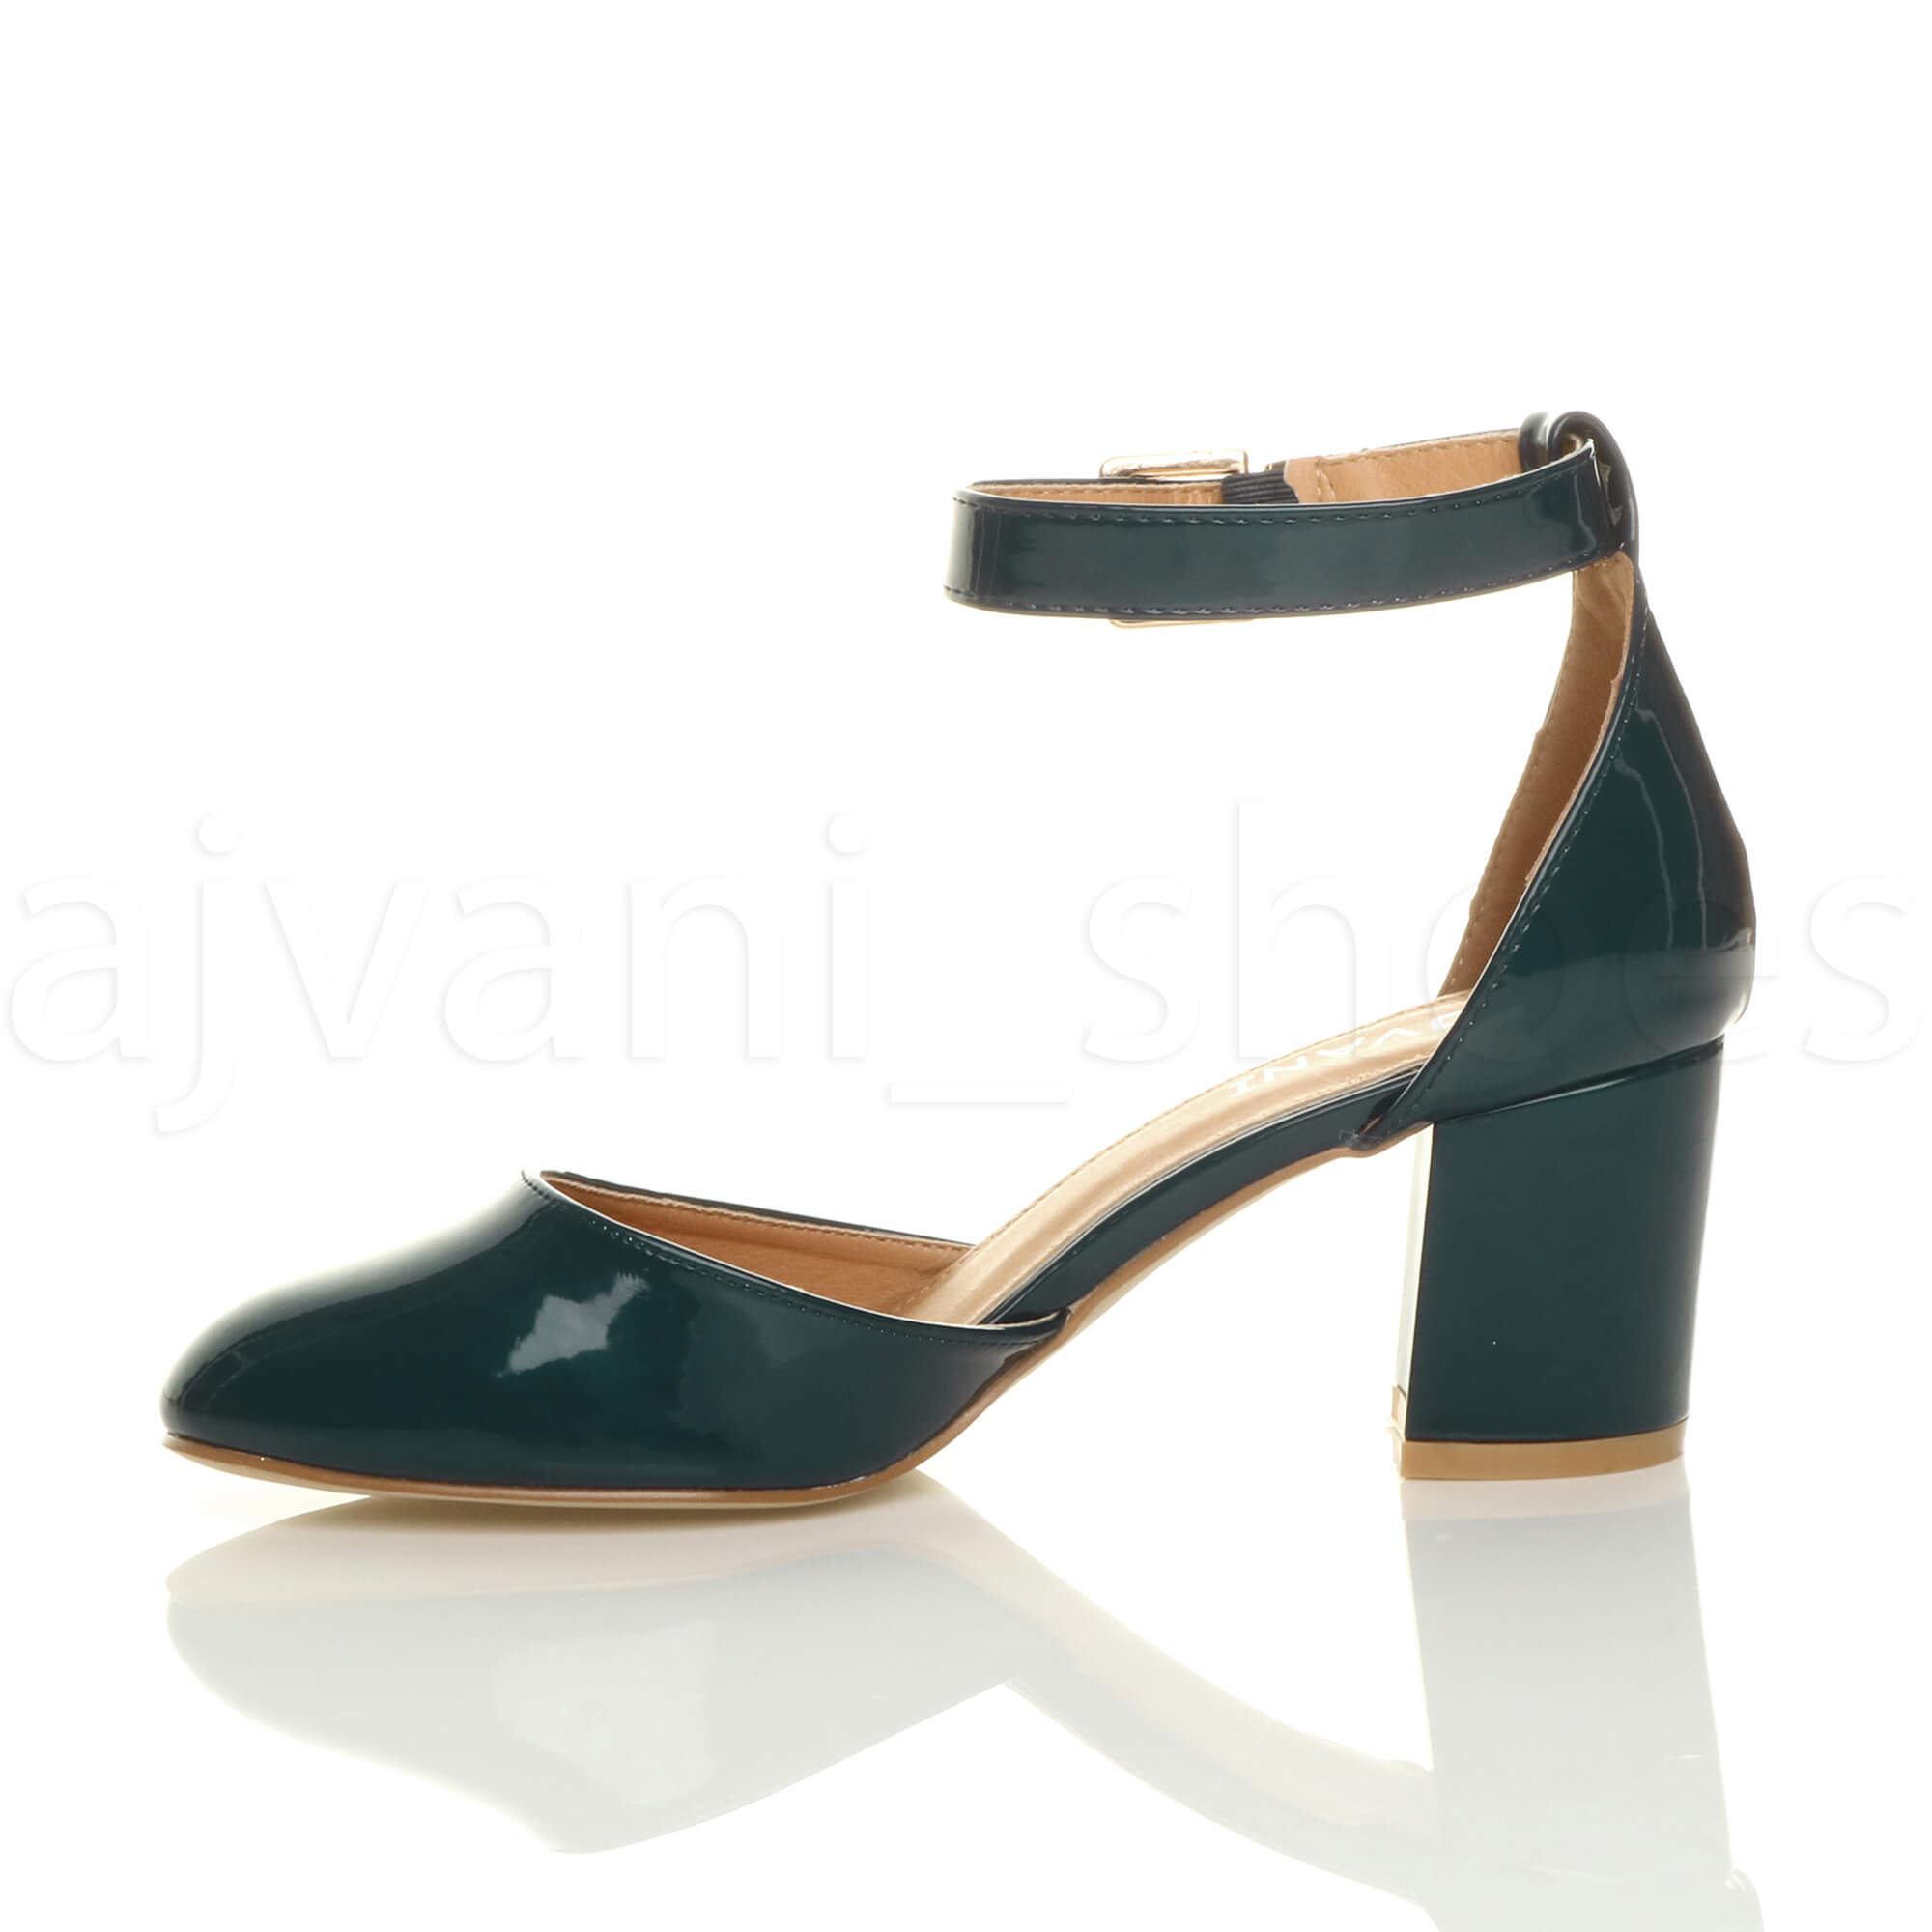 WOMENS-LADIES-LOW-MID-BLOCK-HEEL-ANKLE-STRAP-MARY-JANE-COURT-SHOES-SANDALS-SIZE thumbnail 188